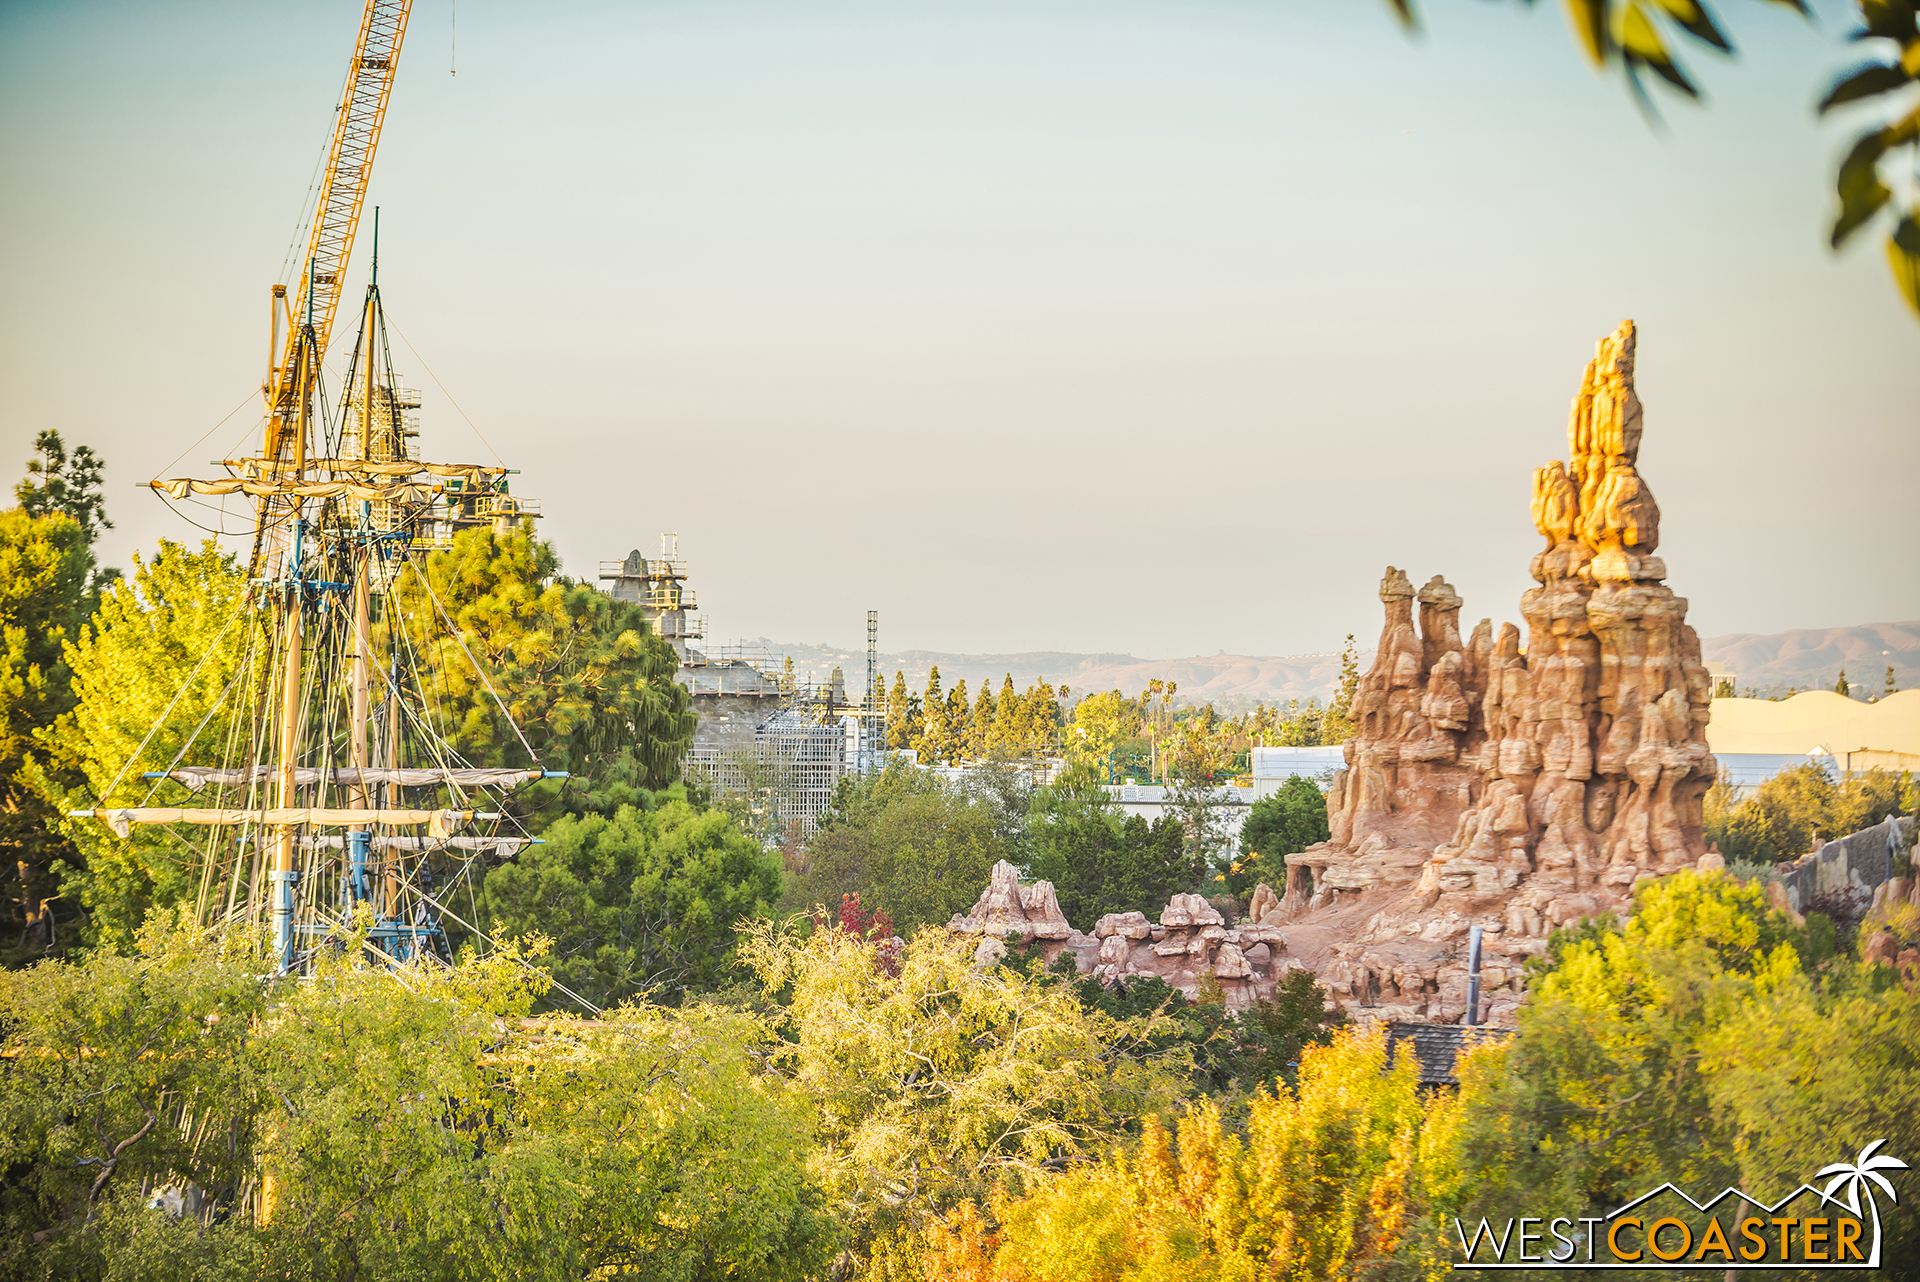 Lets jump to Tarzan's Treehouse and look at how things appear to be progressing from inside the park.